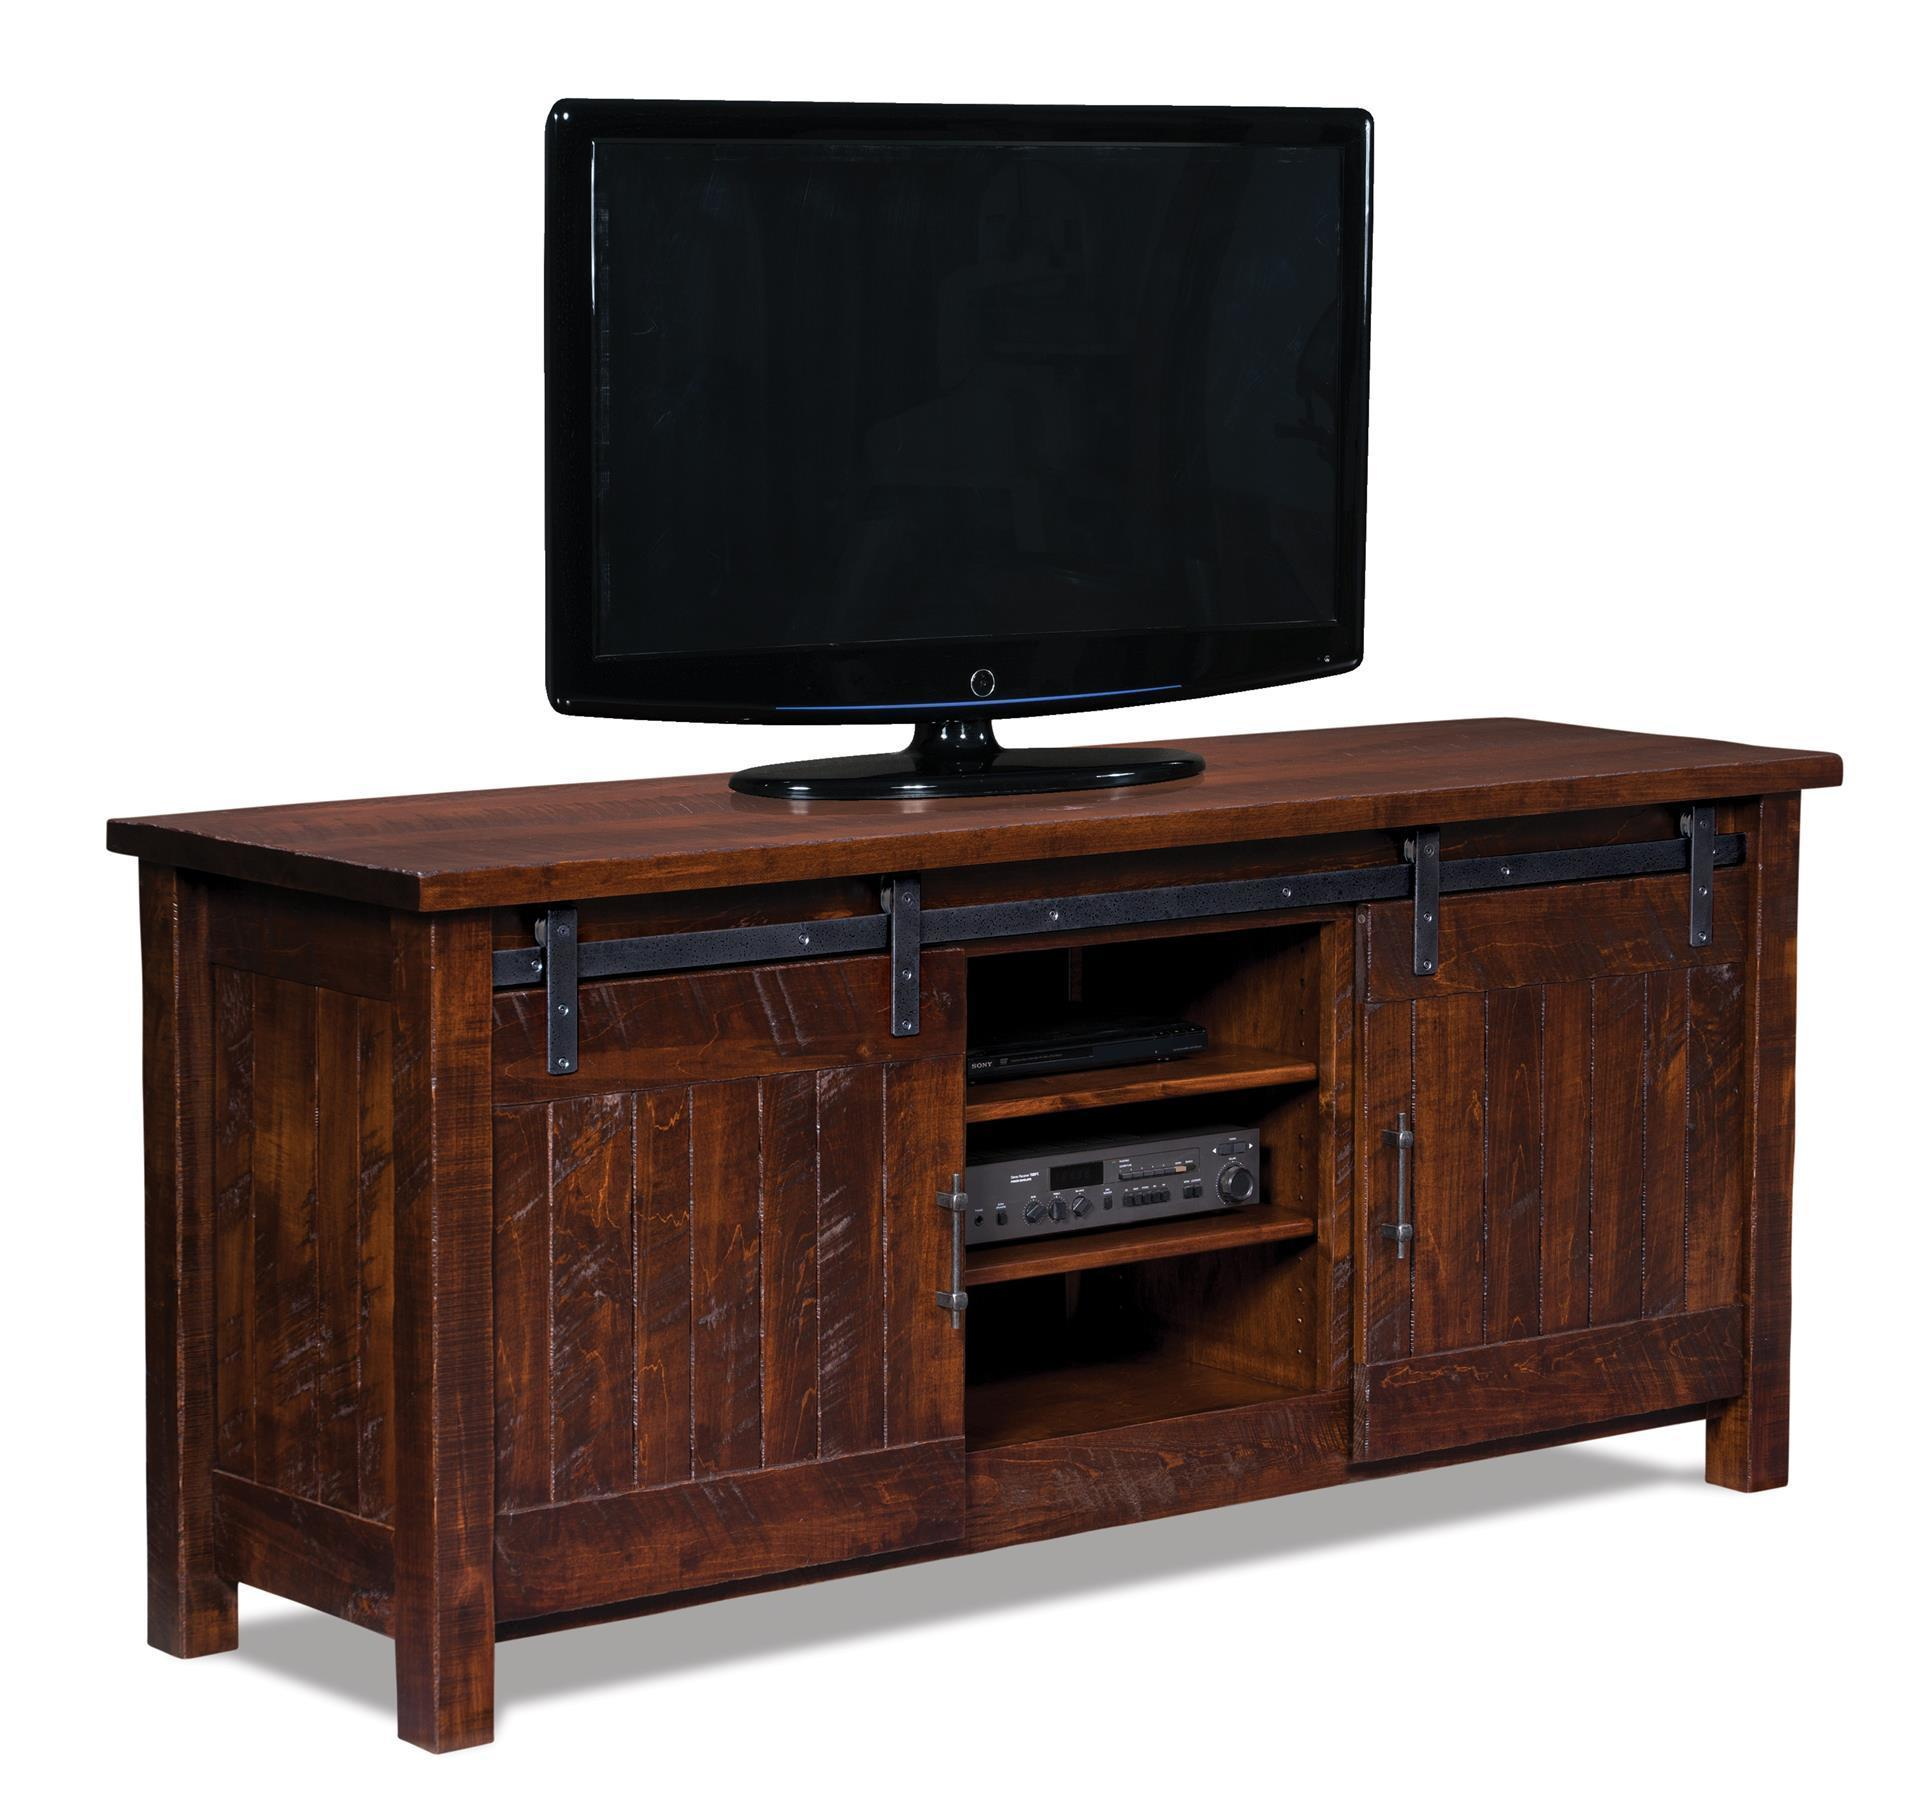 Sale Furniture Houston: Houston Two Door LCD Stand From DutchCrafters Amish Furniture